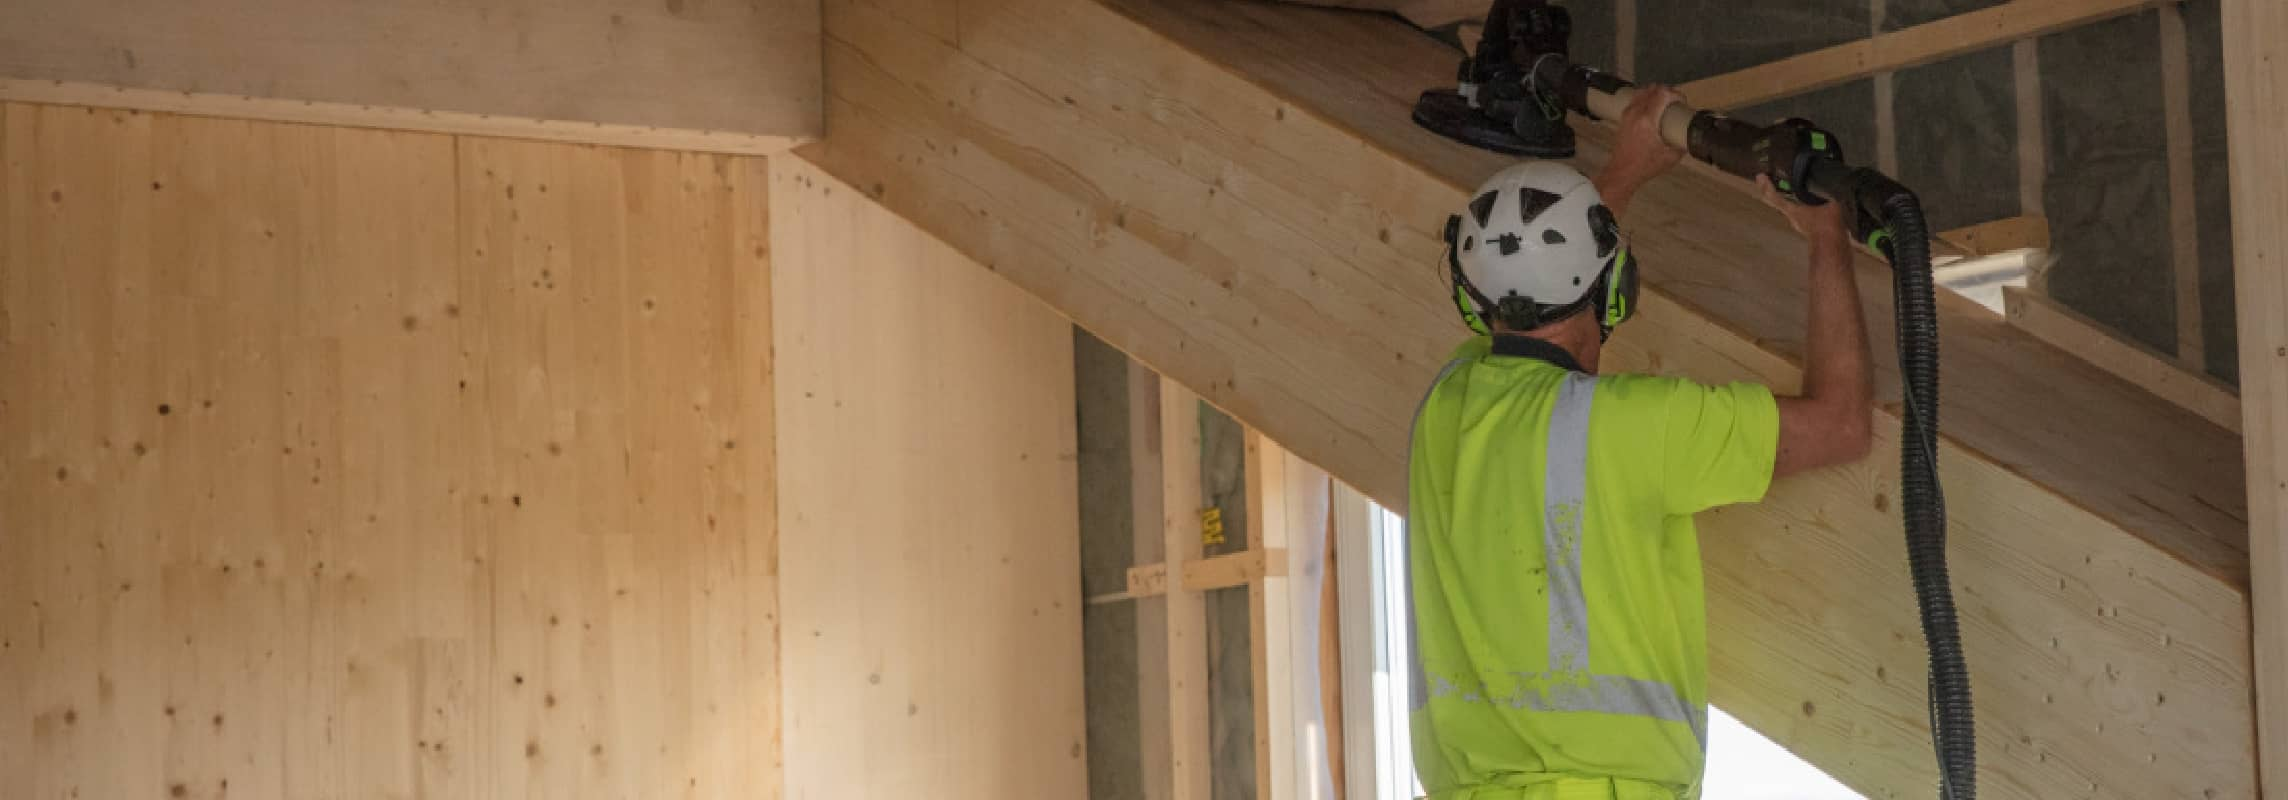 Construction worker building home